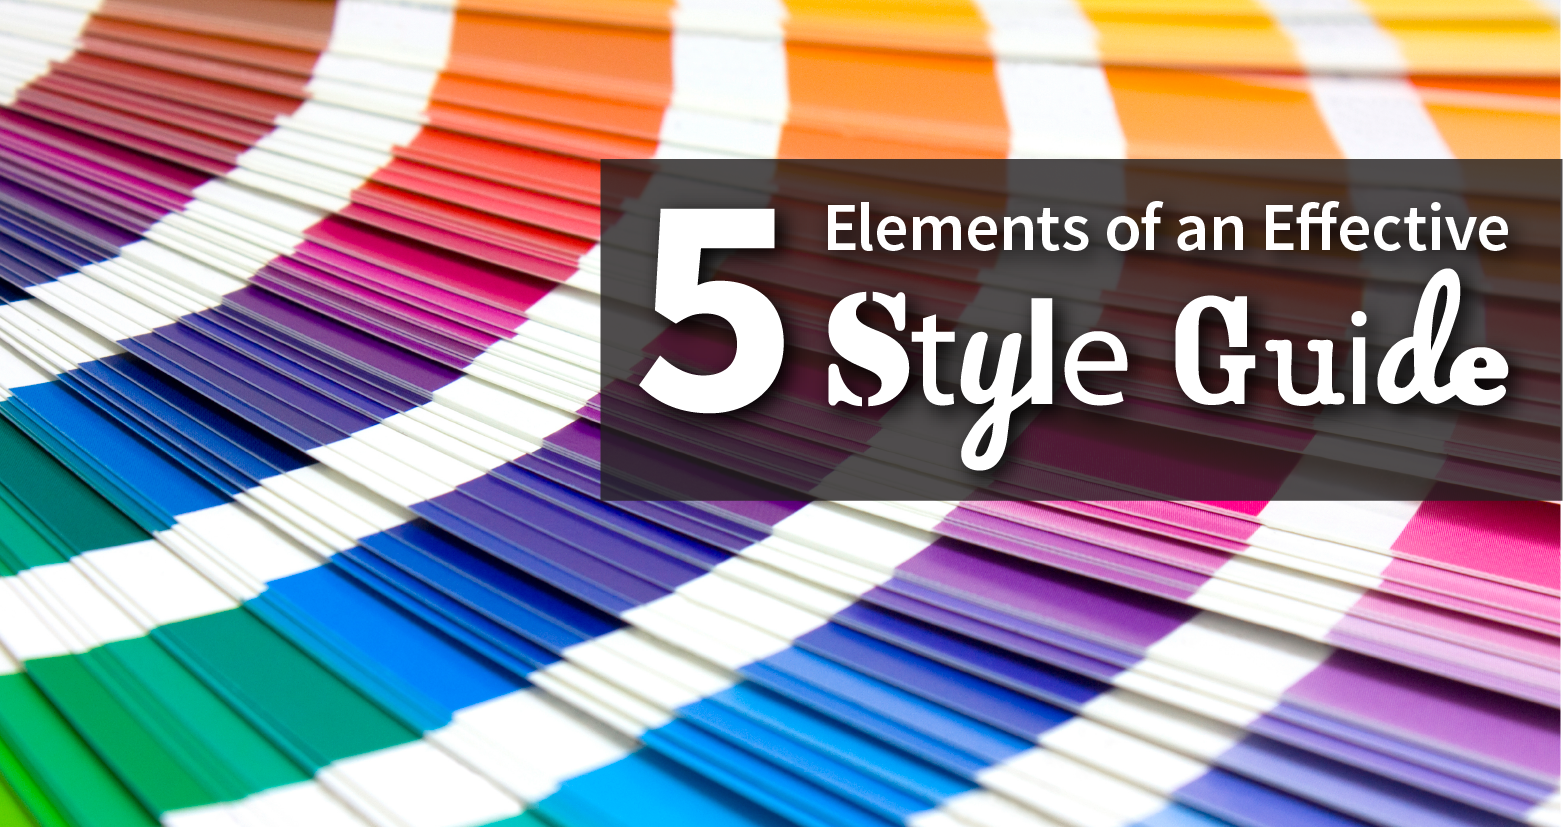 elements of an effective style guide-01-1.png